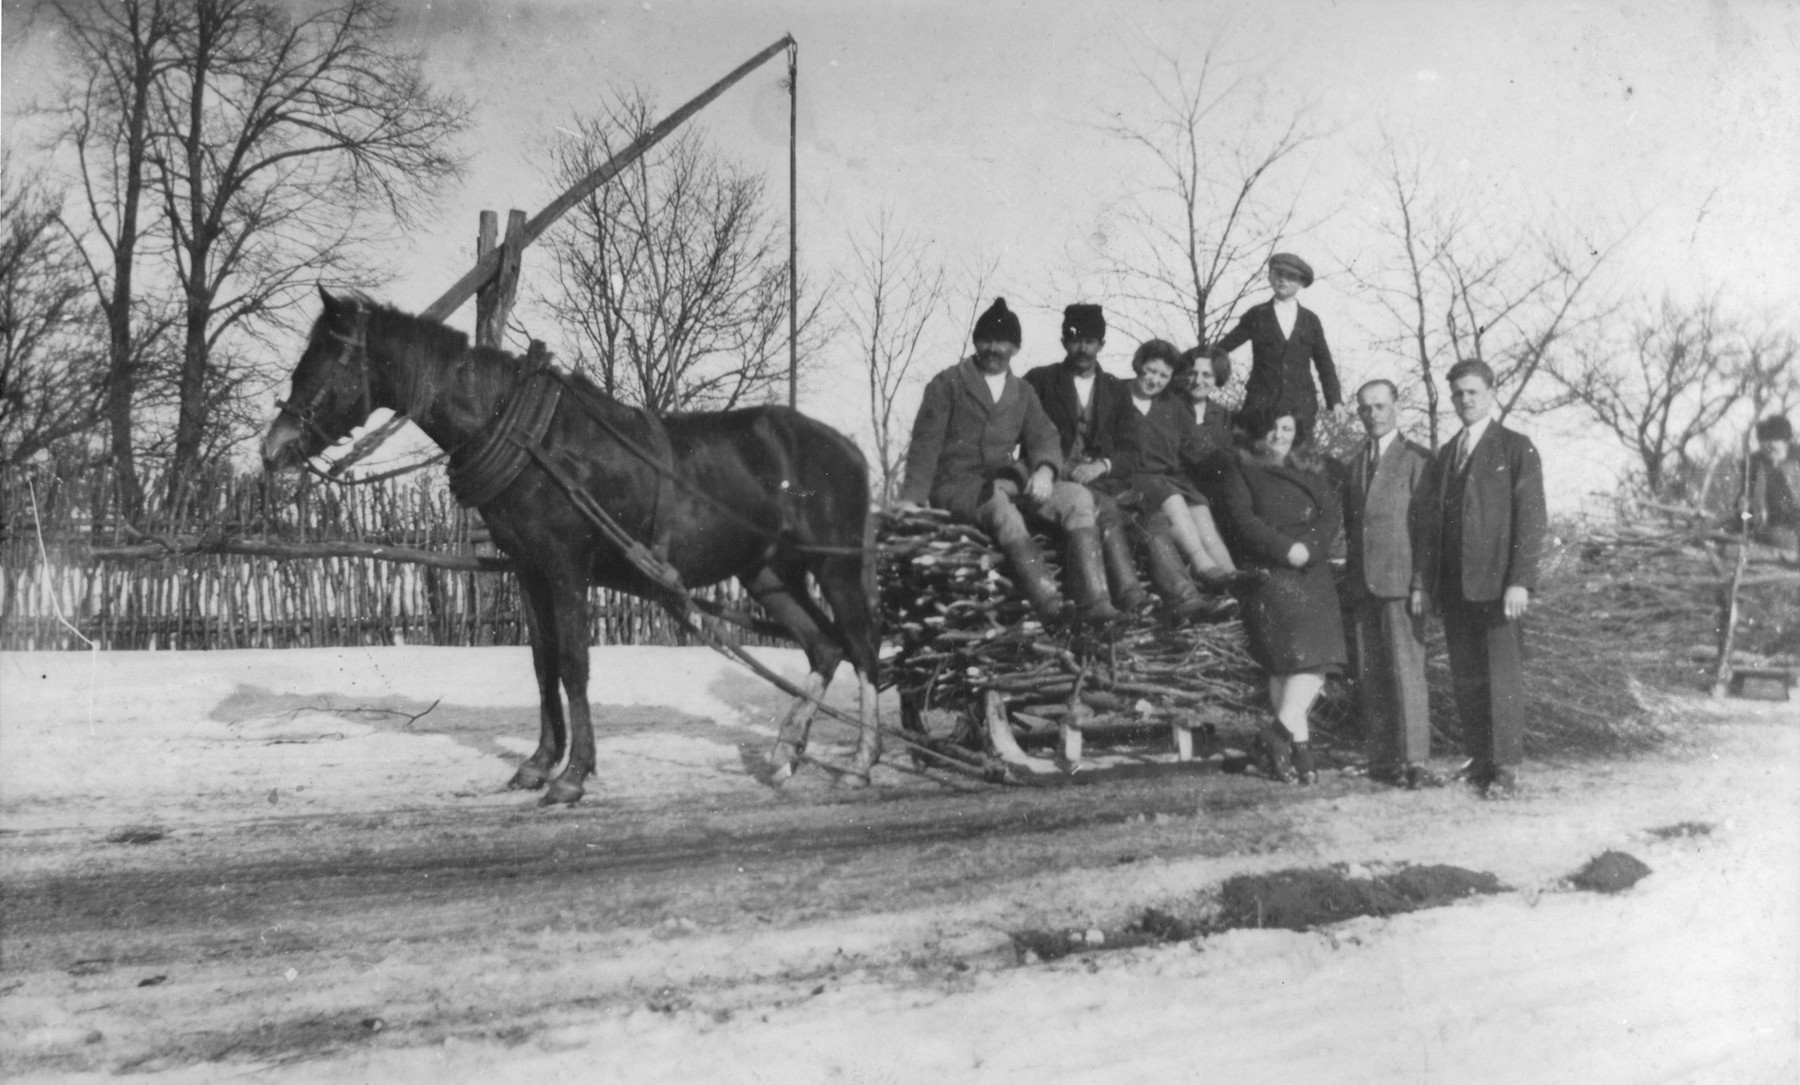 The Gurfein family poses on a horse-drawn sleigh while on vacation in Raczyna, Poland.  Among those pictured is Basia Gurfein (front).